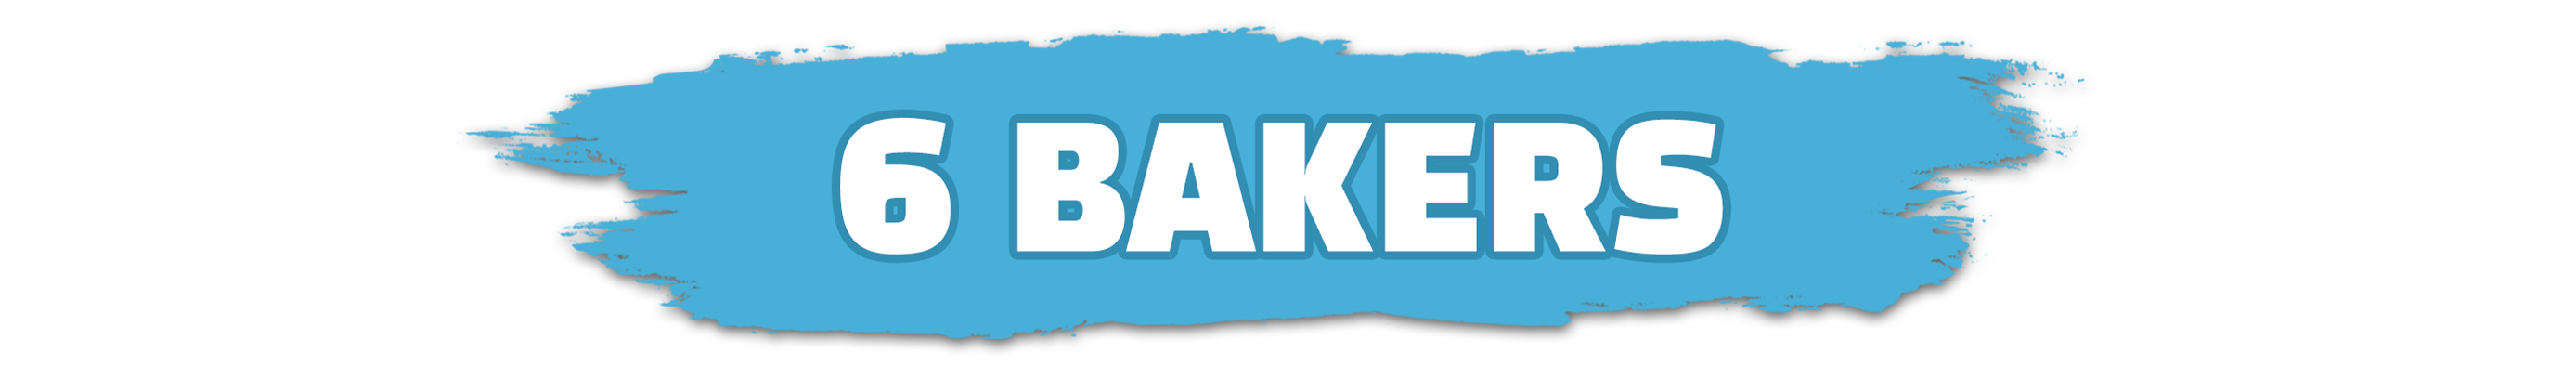 6 Bakers